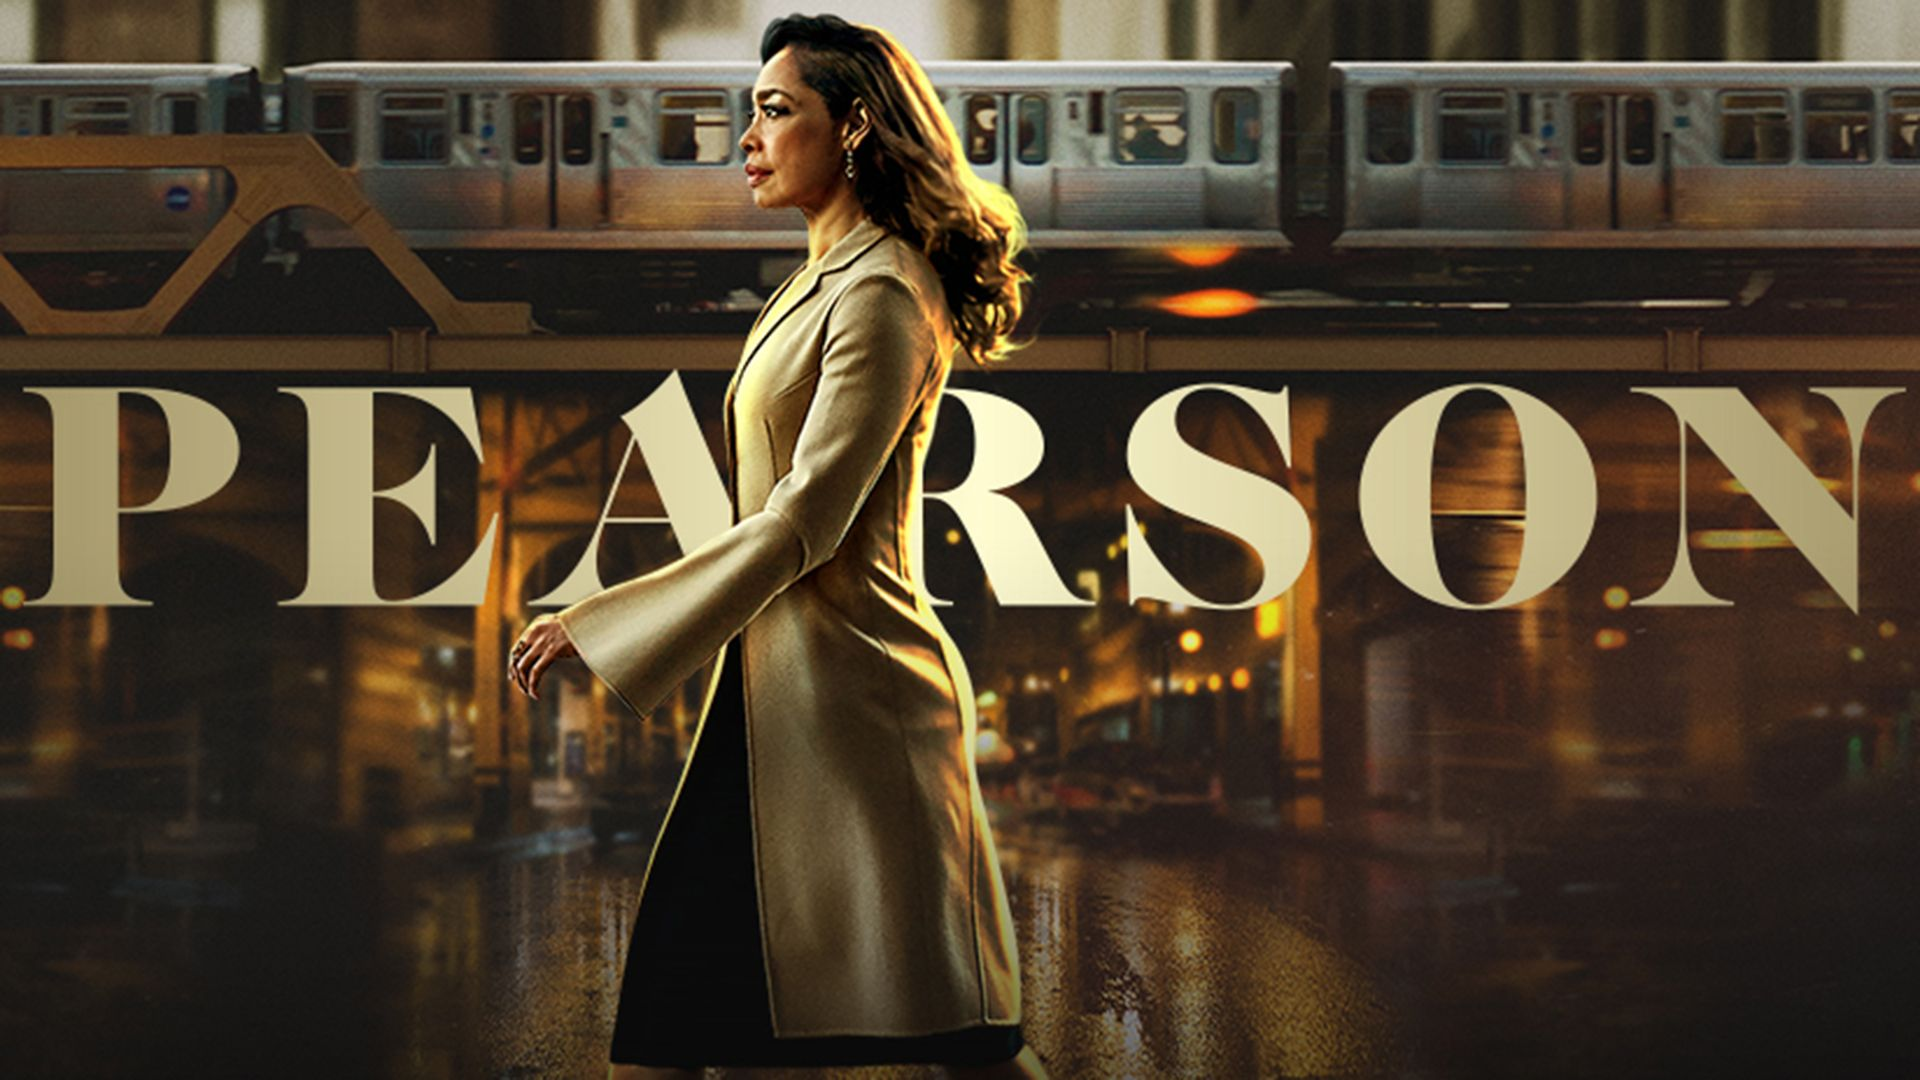 Image result for pearson usa network